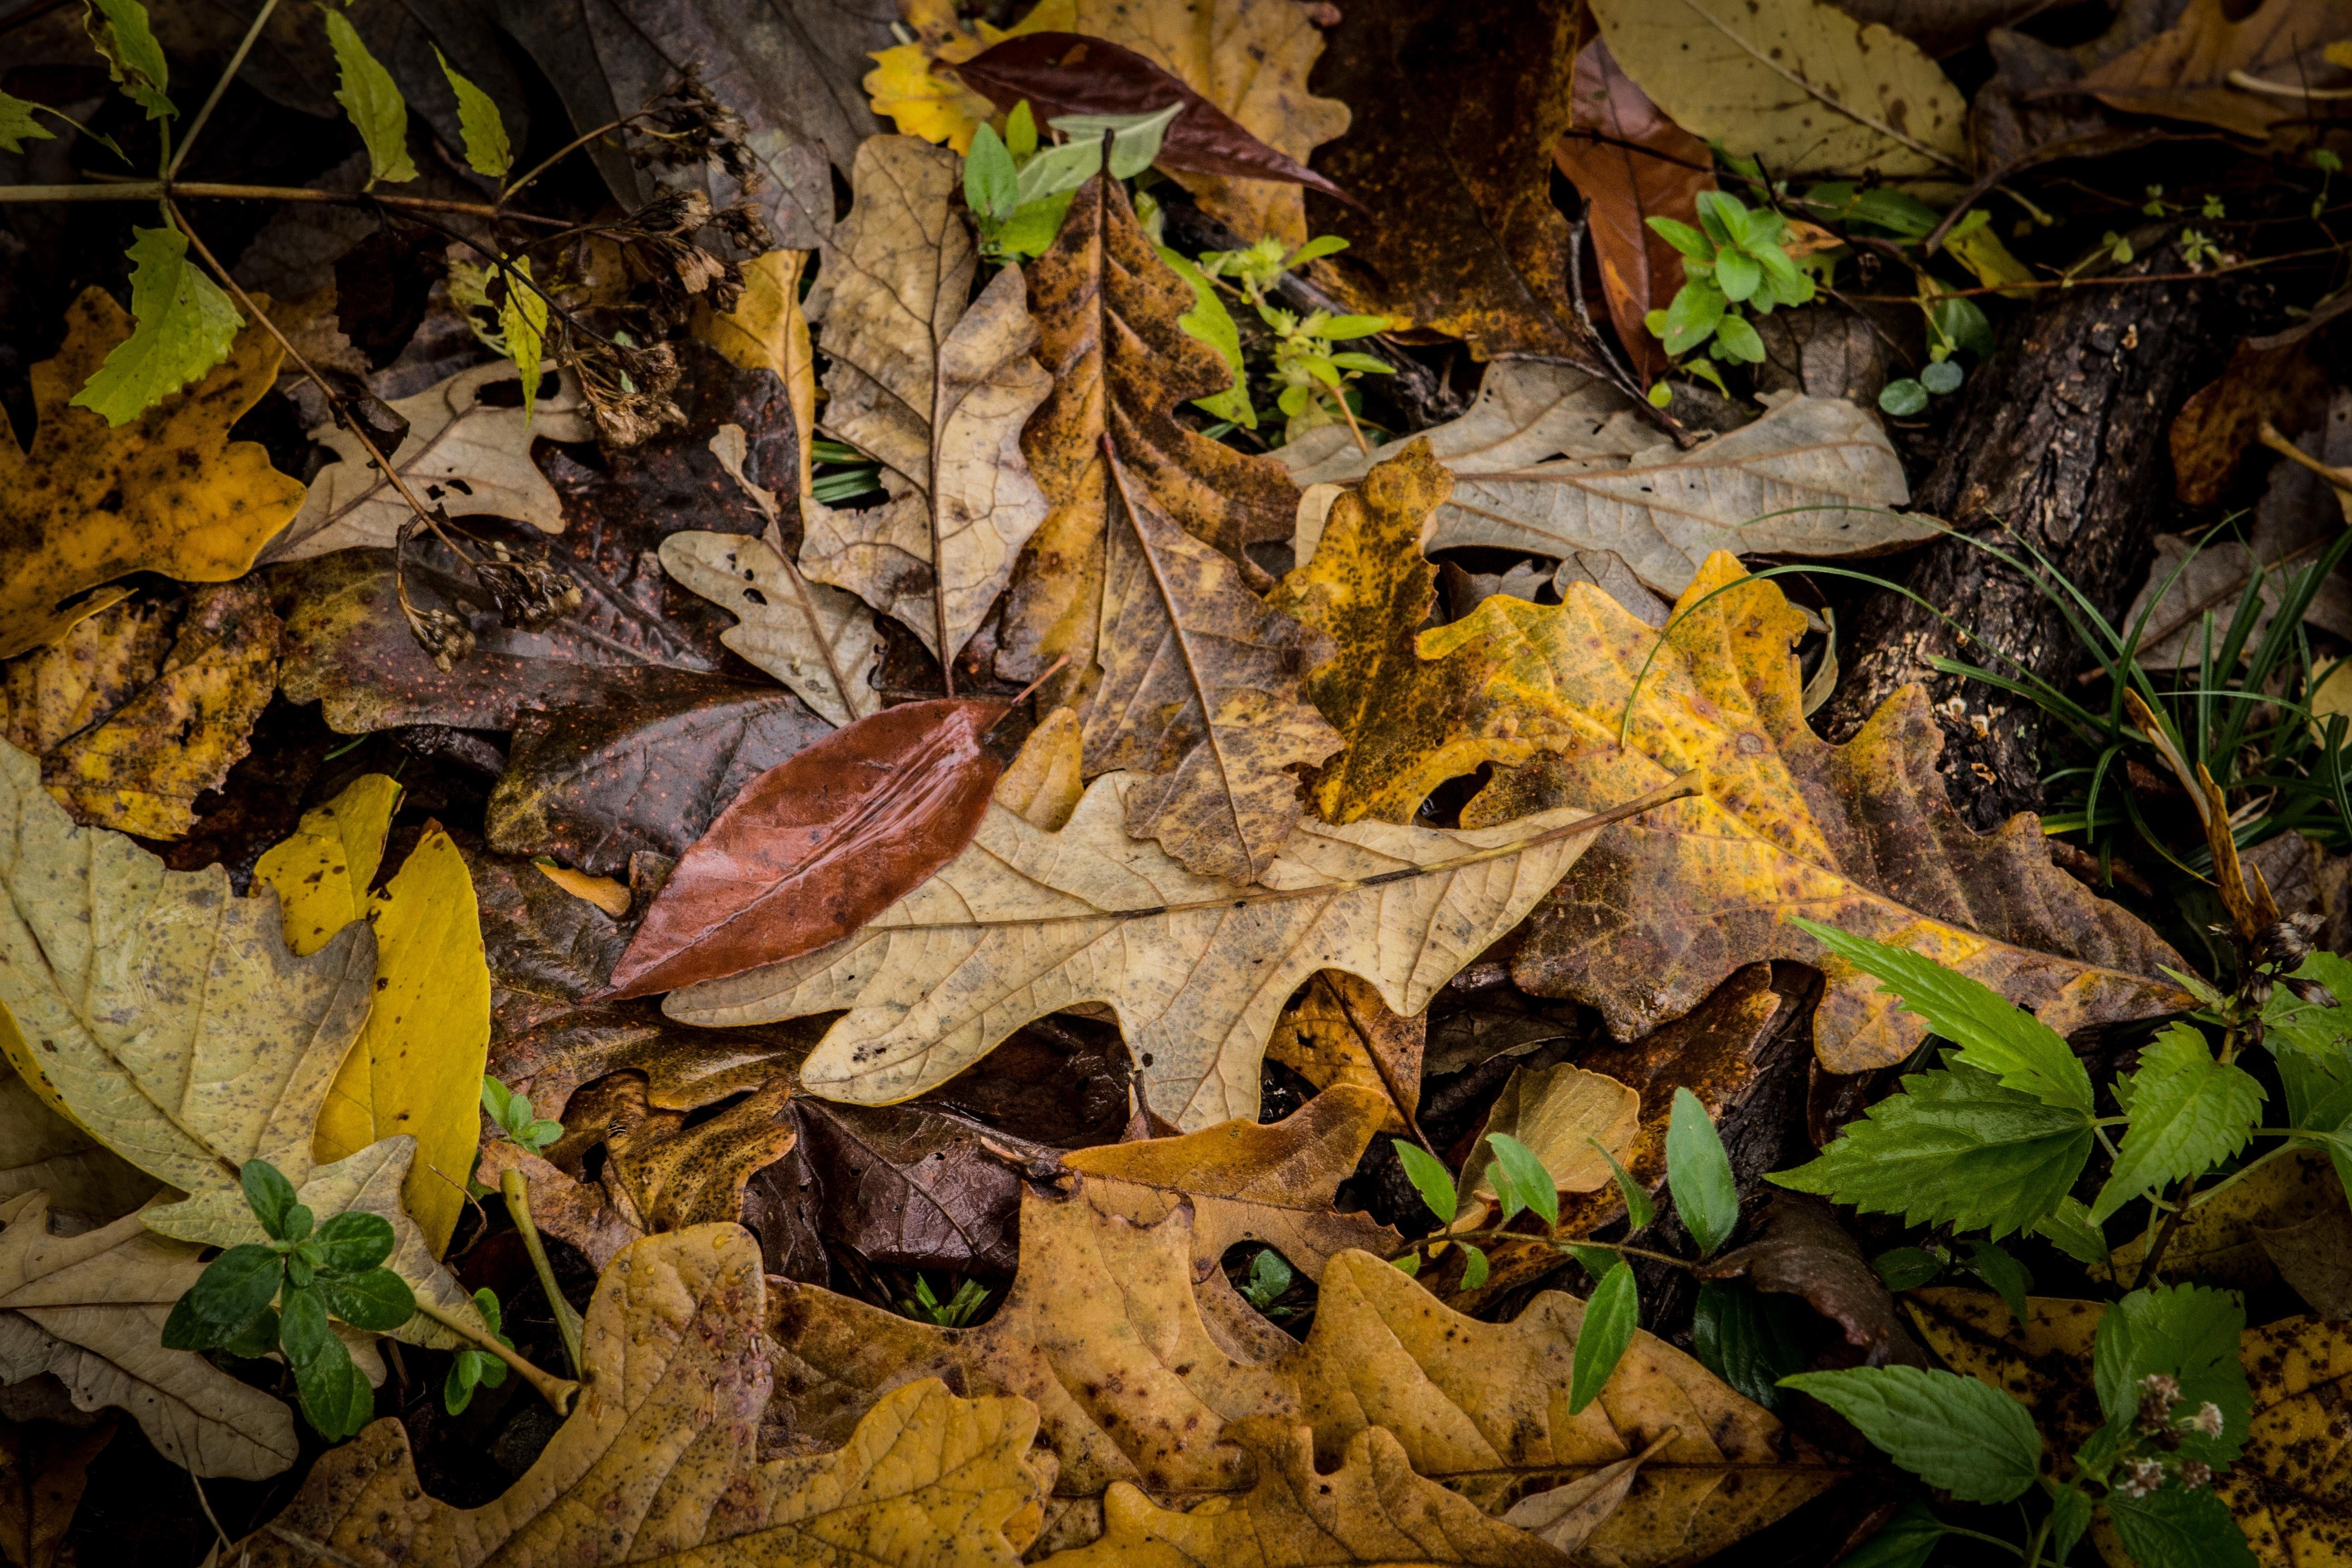 A pile of dead leaves in the fall.